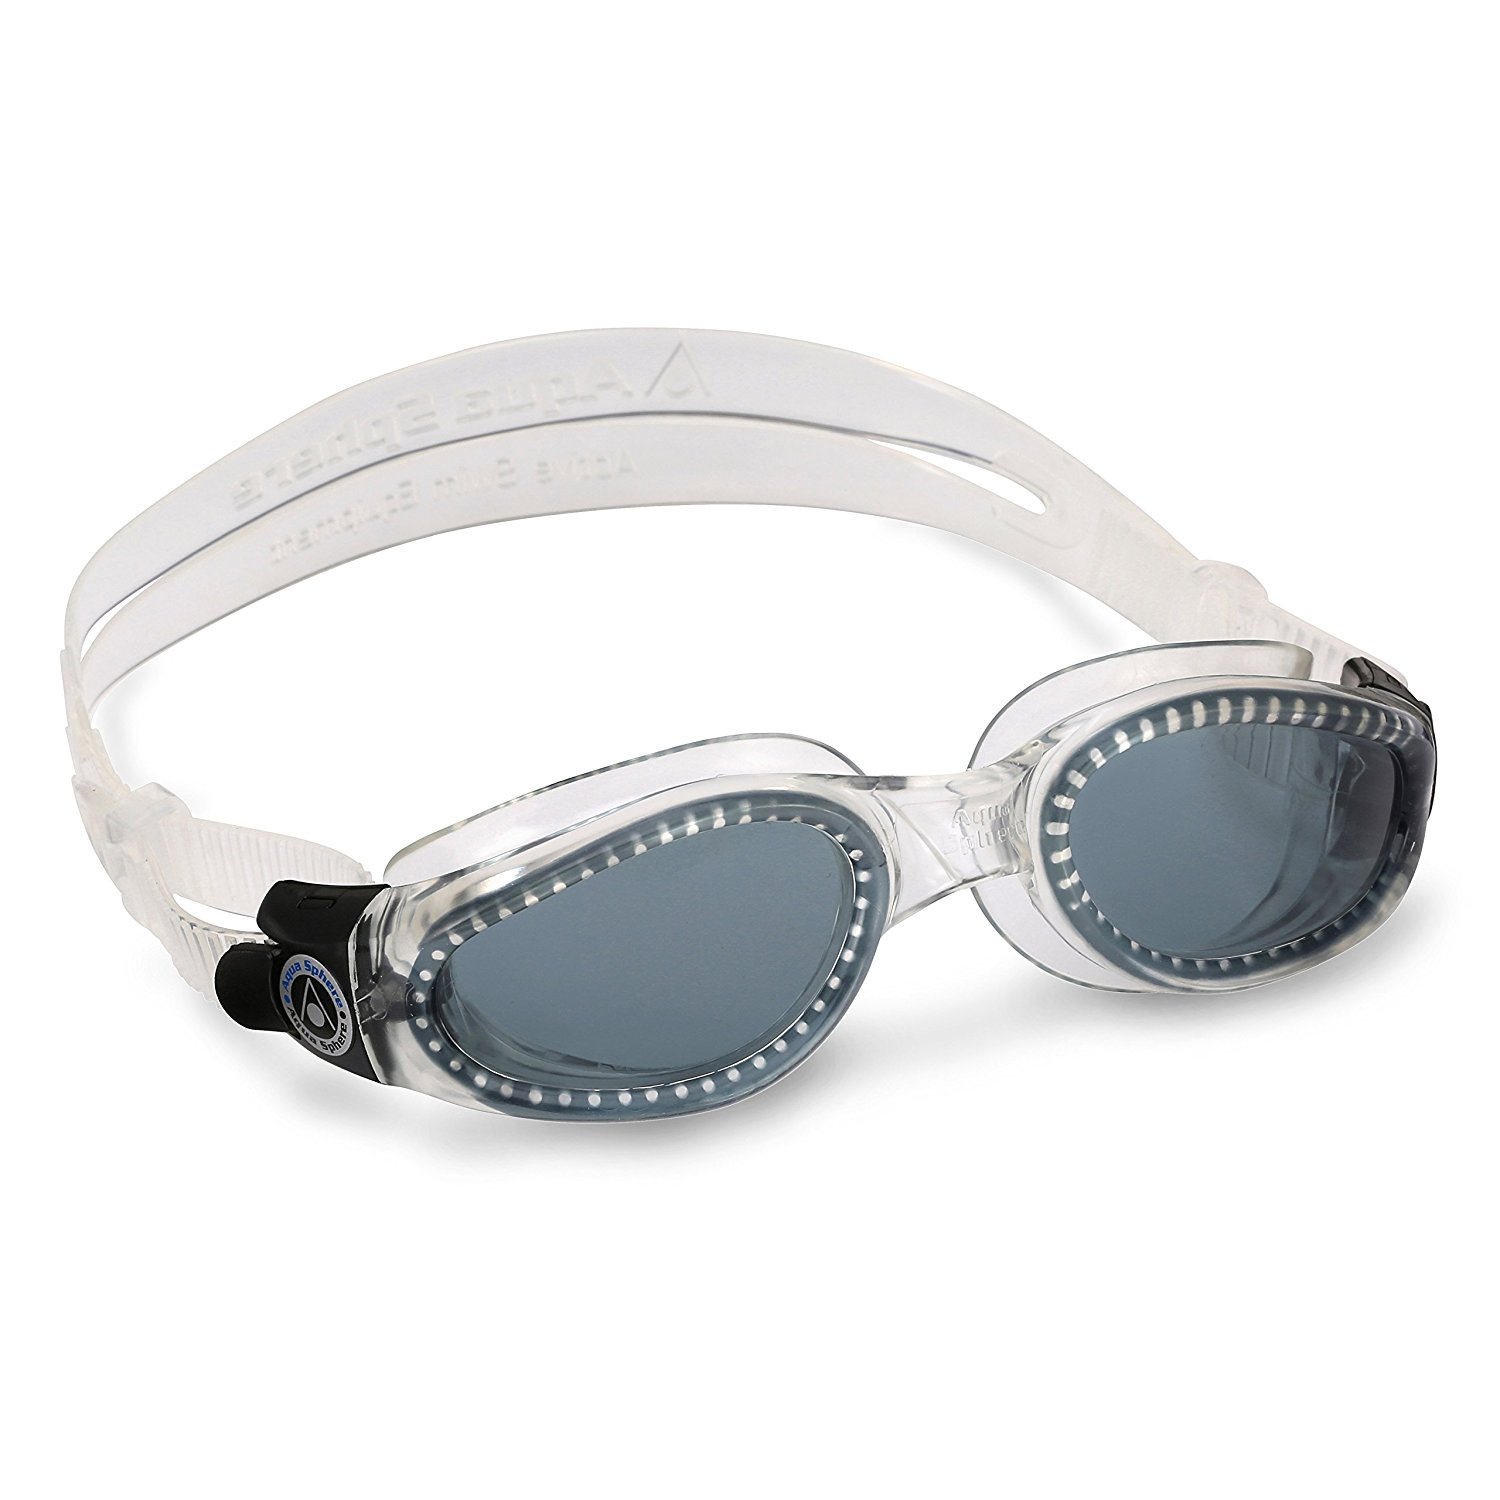 Kaiman Swim Goggle, Made In Italy, Easy-adjust buckle system..., By Aqua Sphere Ship from US